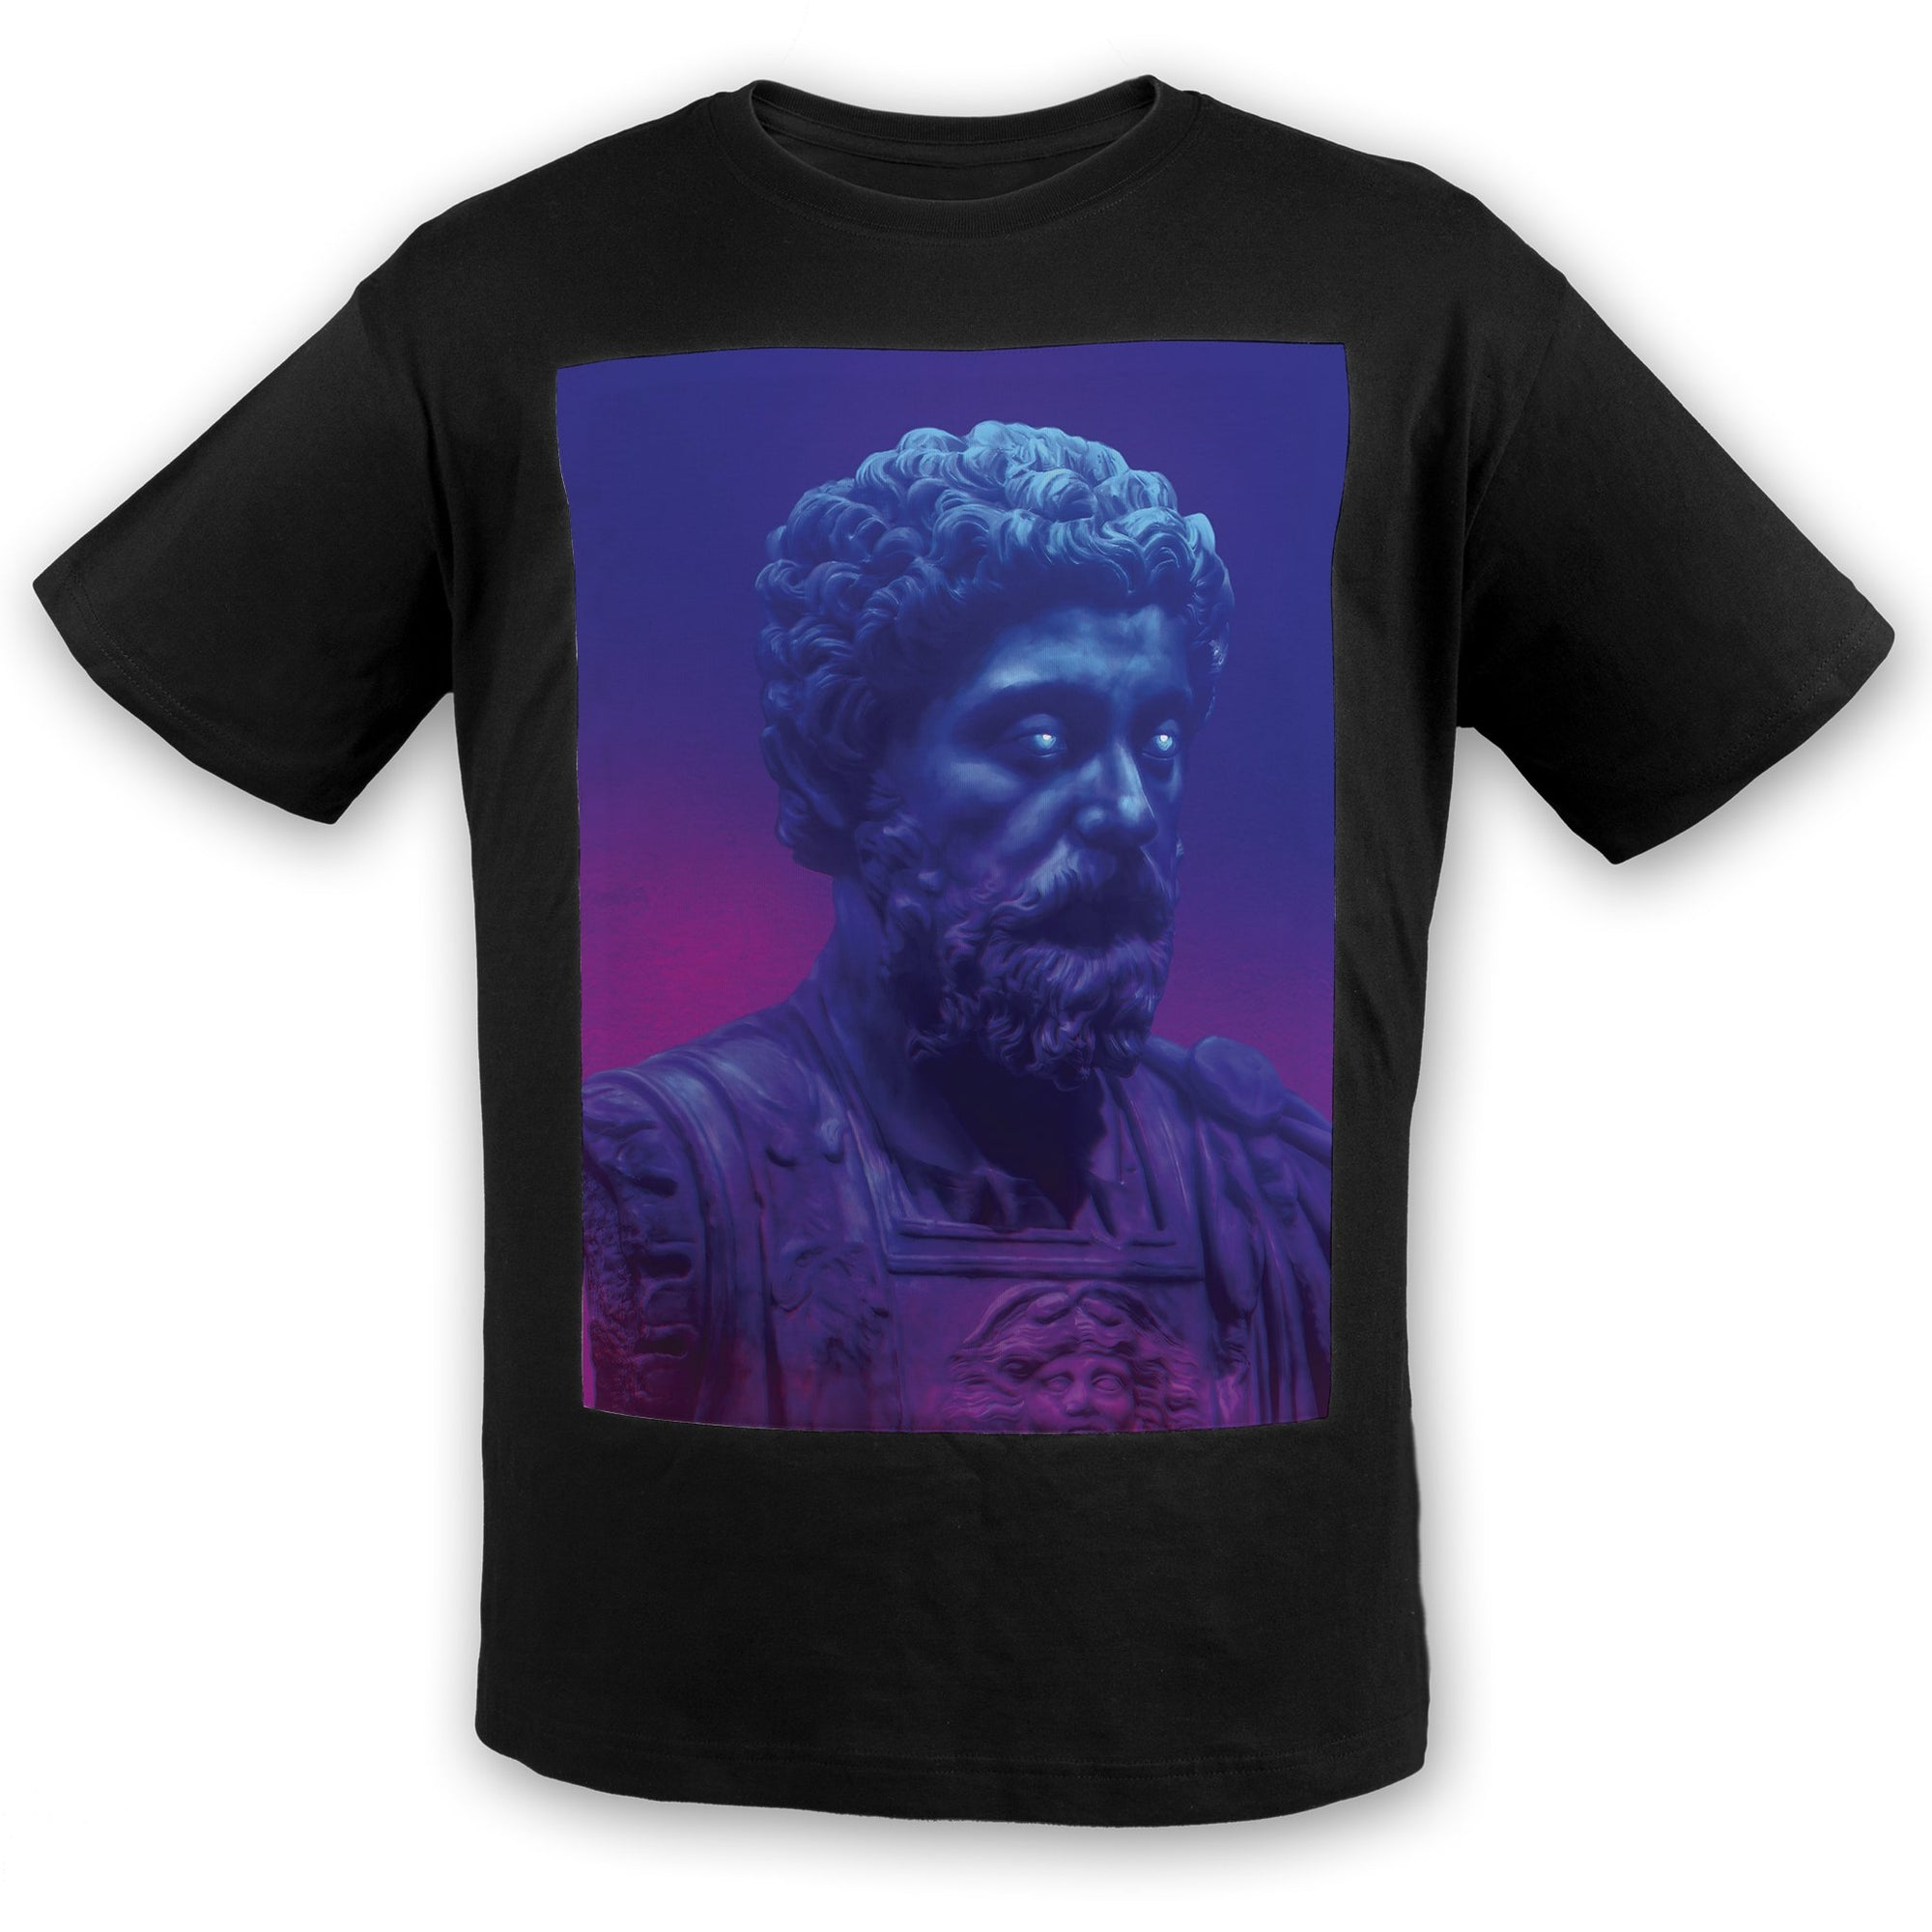 AKIRA THE DON & MARCUS AURELIUS - SELF CONTROL Cotton Tee | meaningwave.com